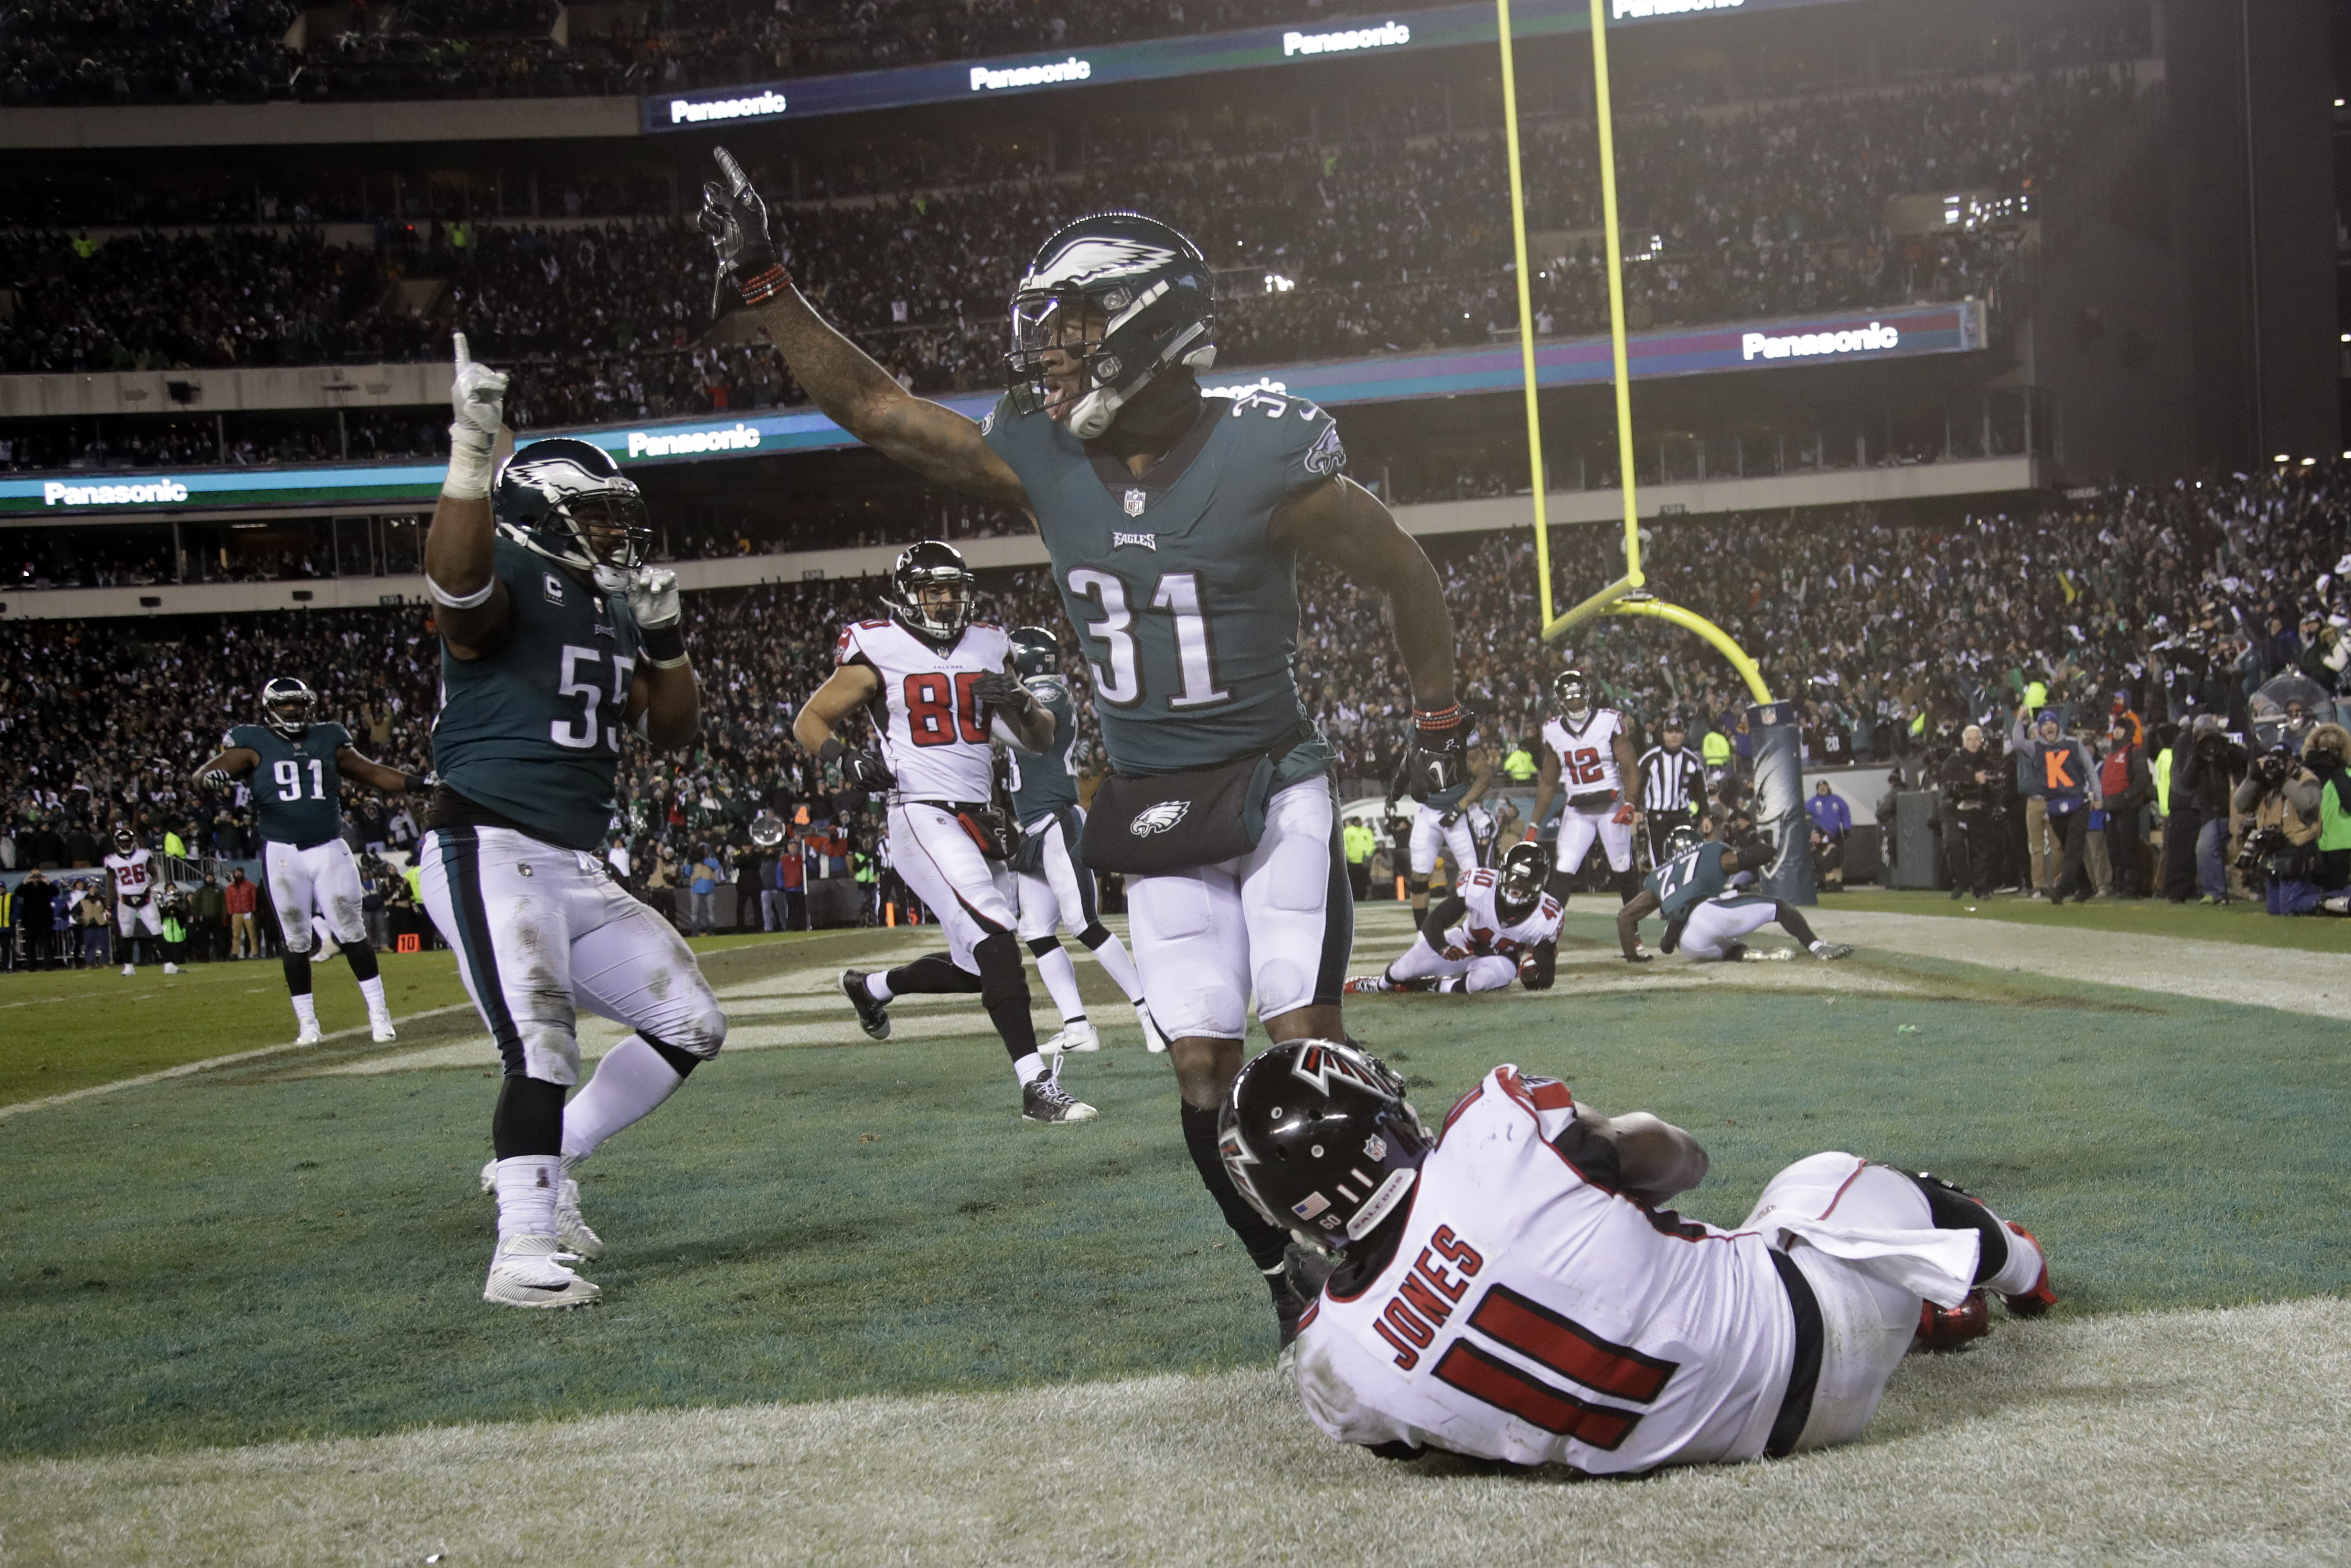 Eagles Use Goal Line Stand Field Goals To Clip Falcons The Blade